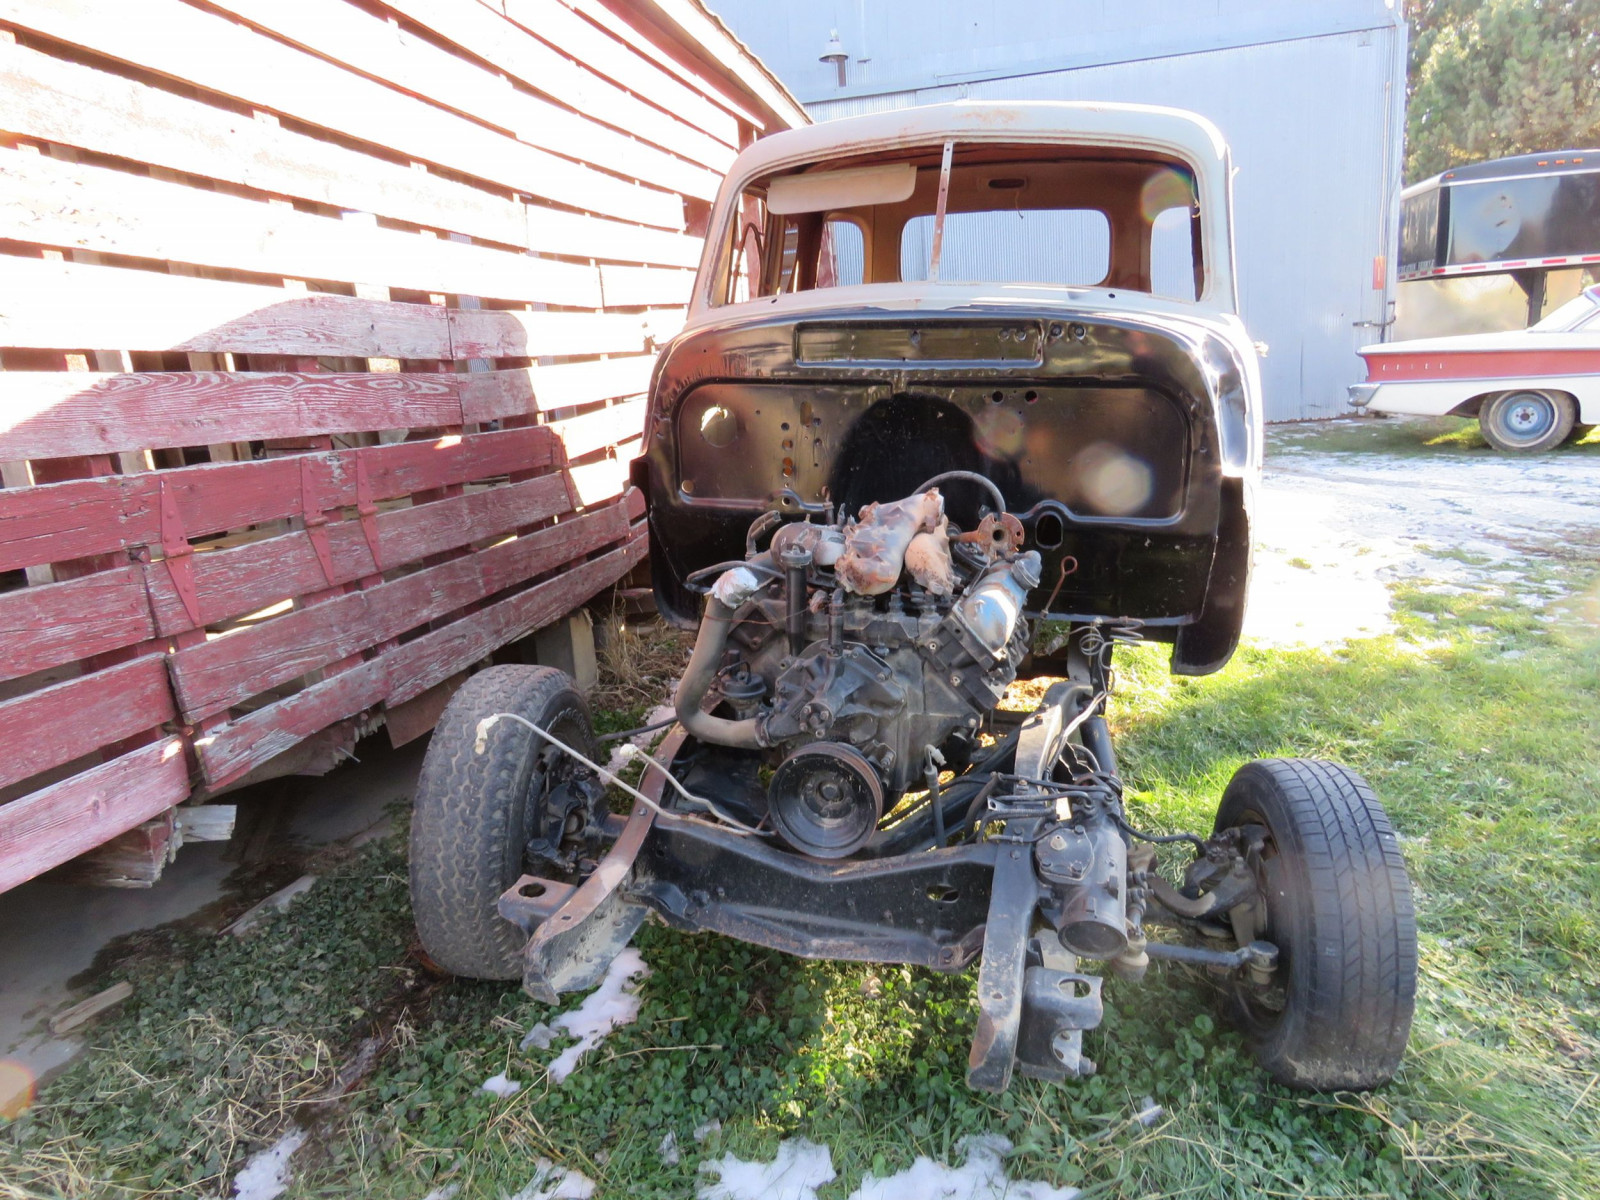 1949 Chevrolet 5 Window Cab Pickup Project - Image 2